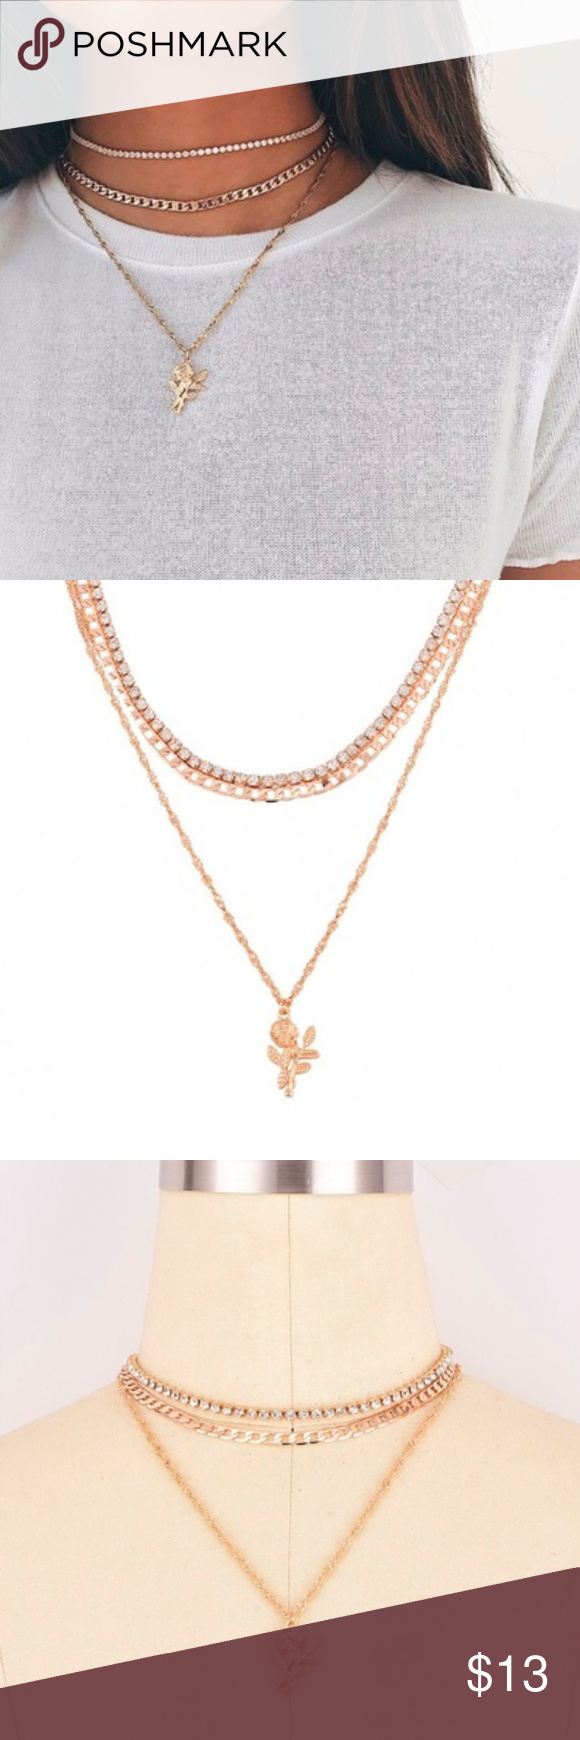 New dainty gold necklace chokers set w rose dainty gold